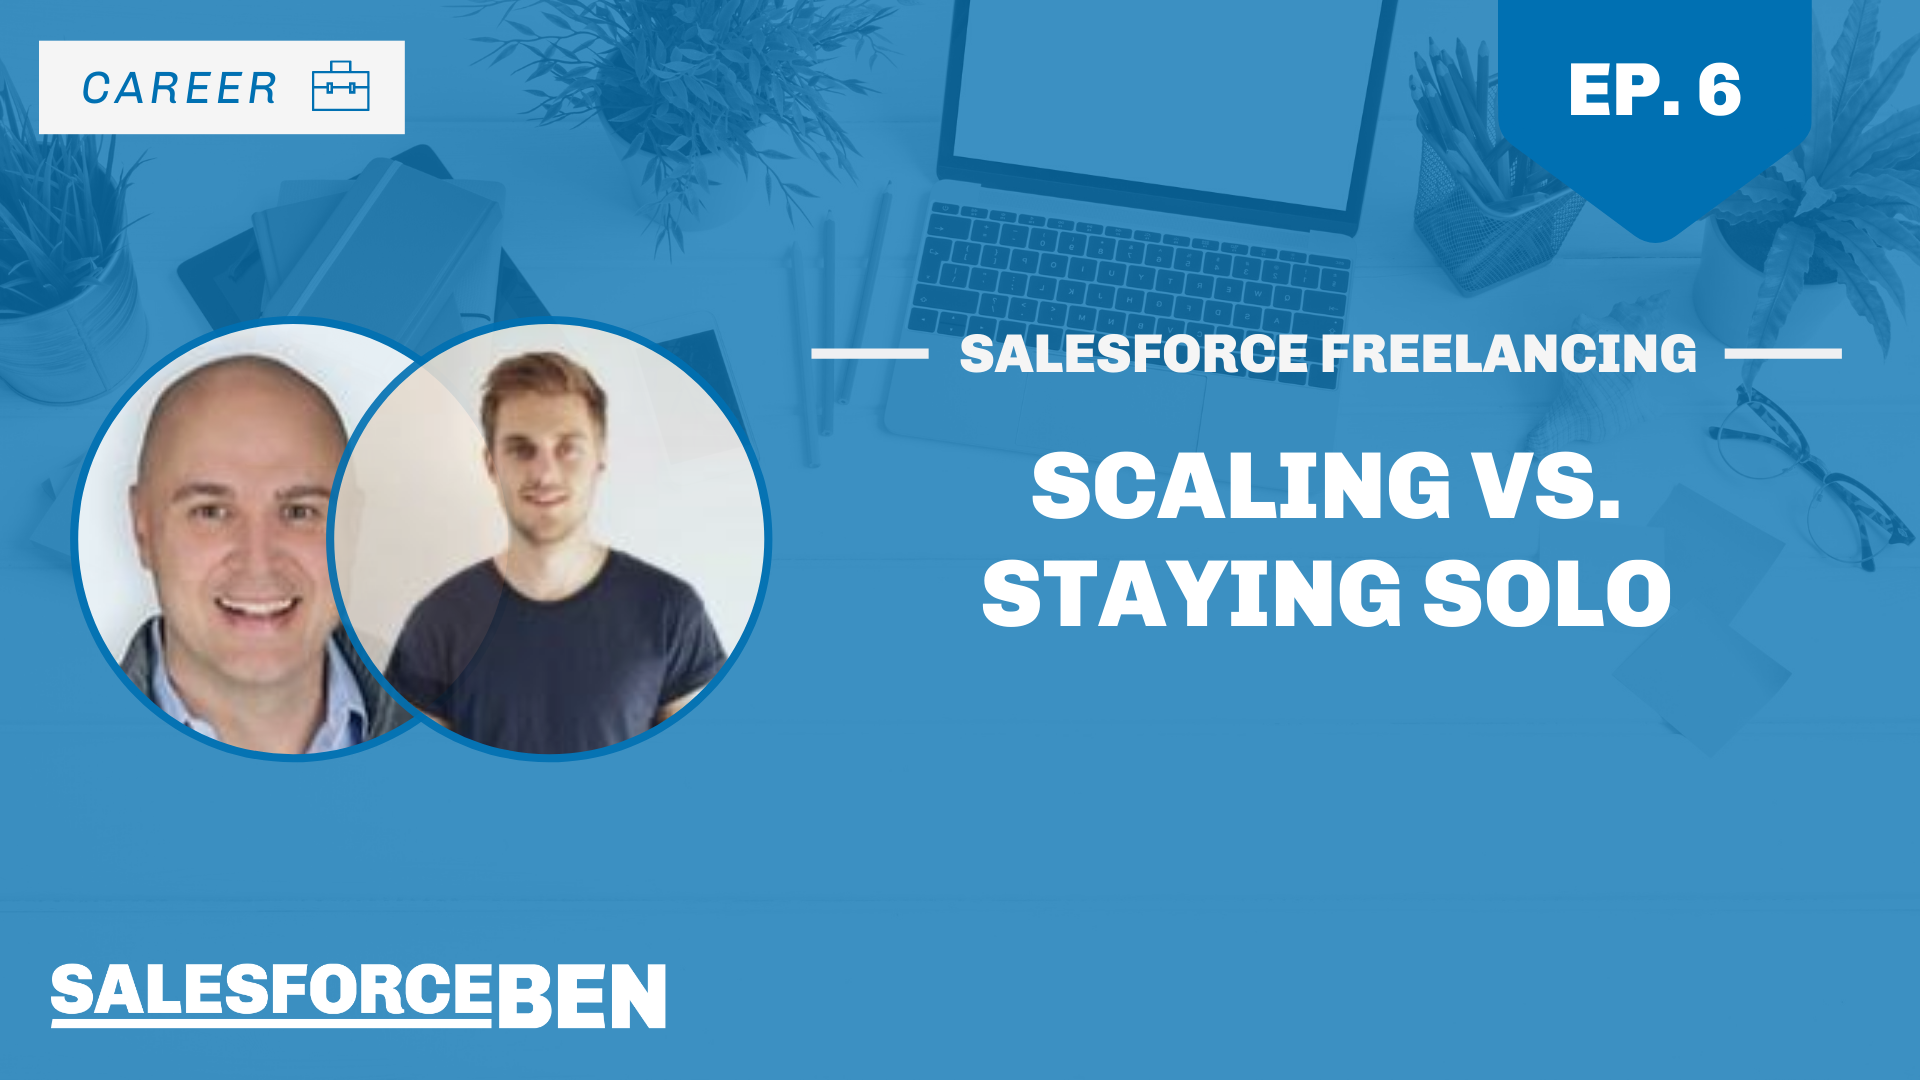 Salesforce Freelancing: Scaling vs. Staying Solo (Ep. 6)